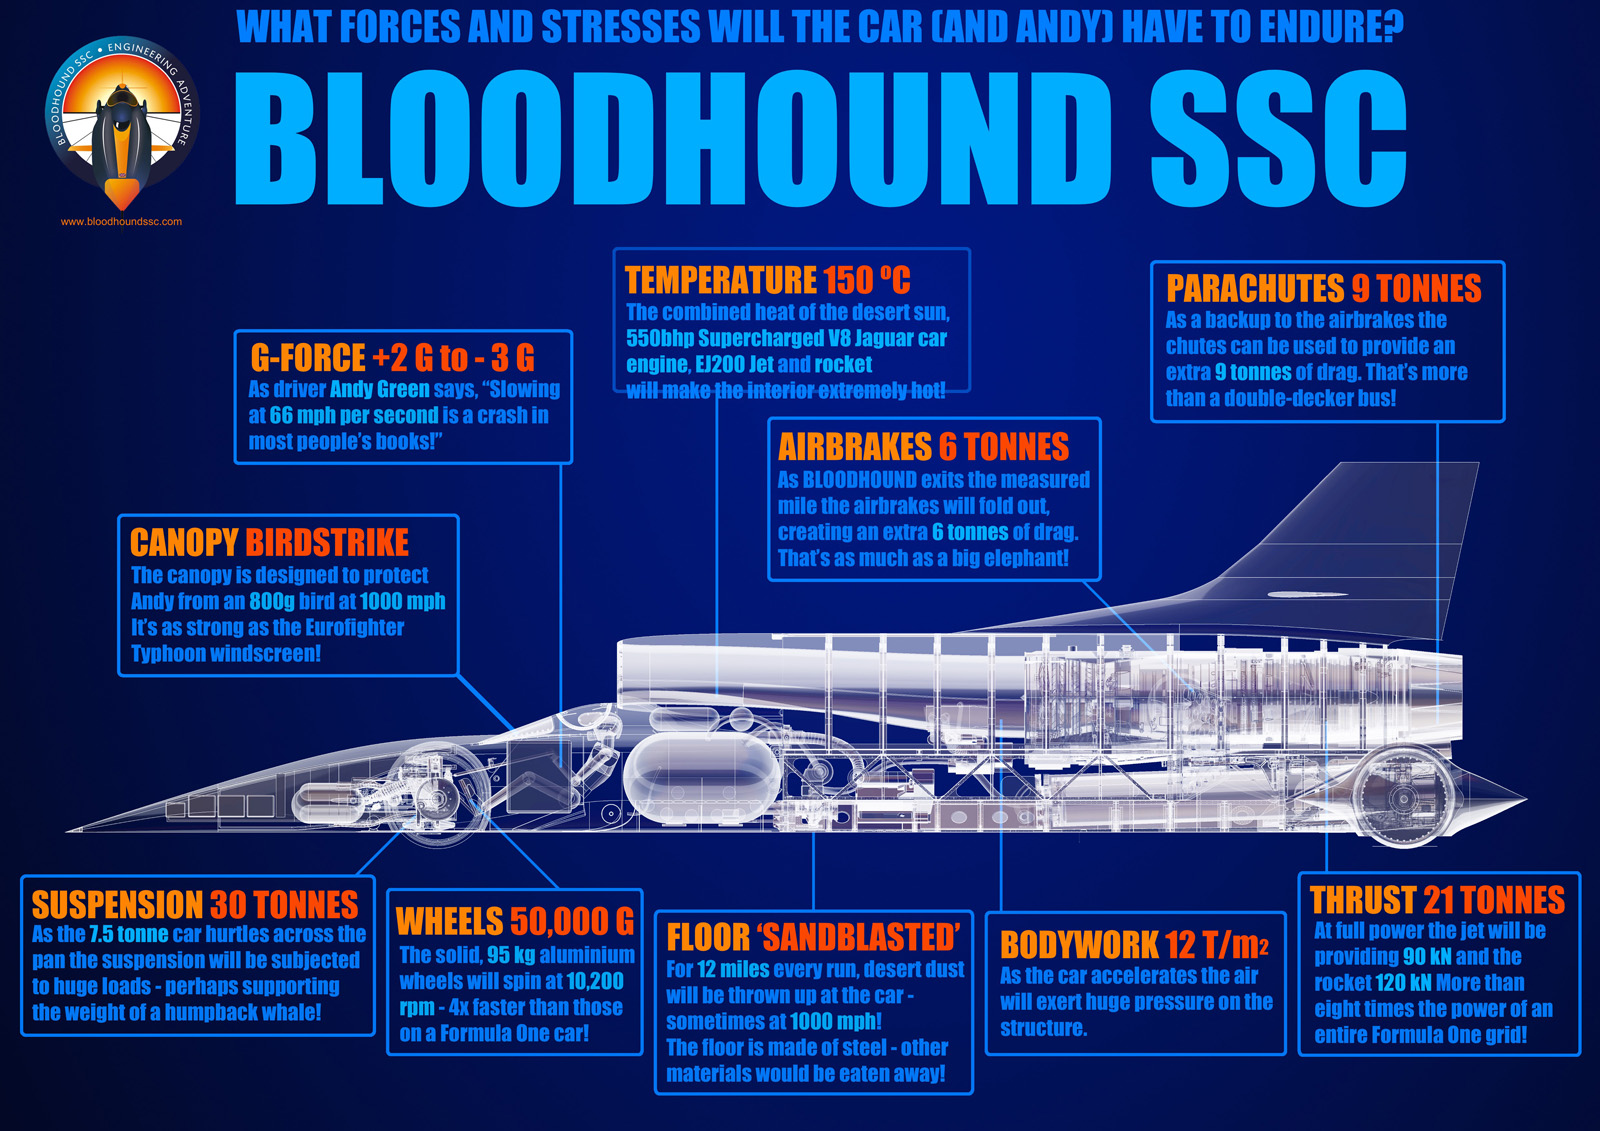 Bloodhound Ssc Going For World Land Speed Record In